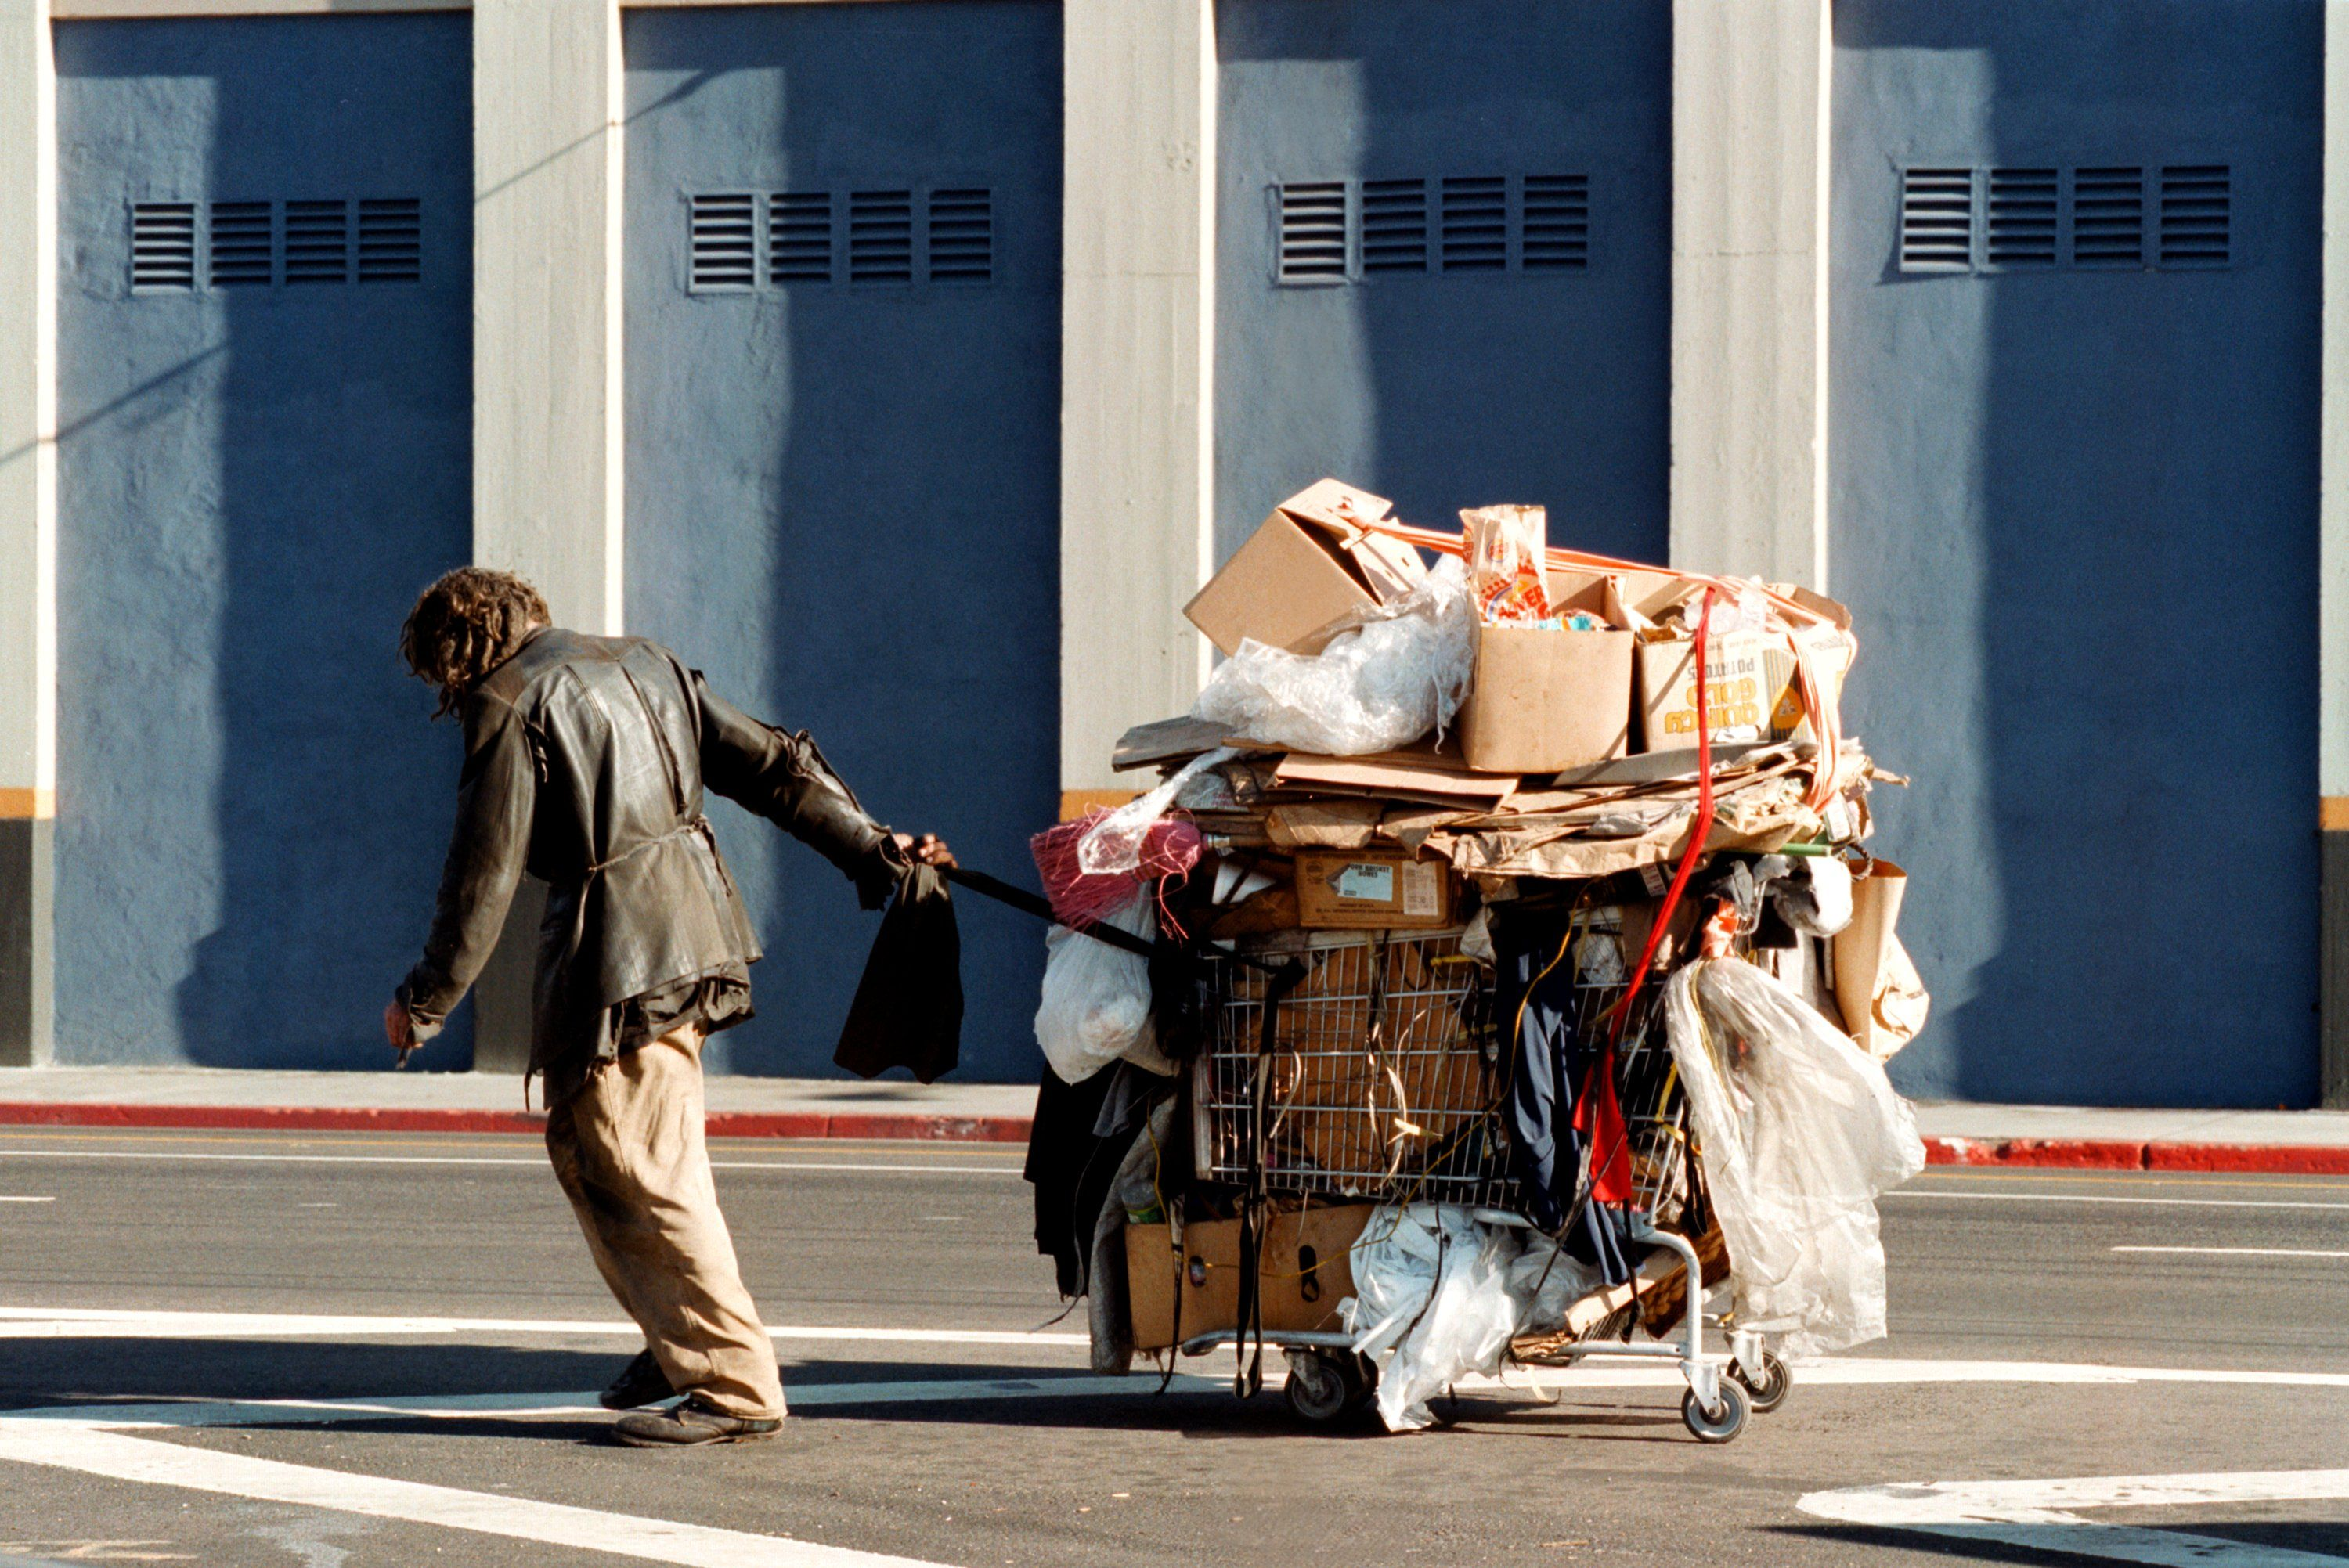 Meet The Couple Who Dedicated Their Entire Life Fighting For The Homeless Homeless Homeless Person Skid Row Los Angeles